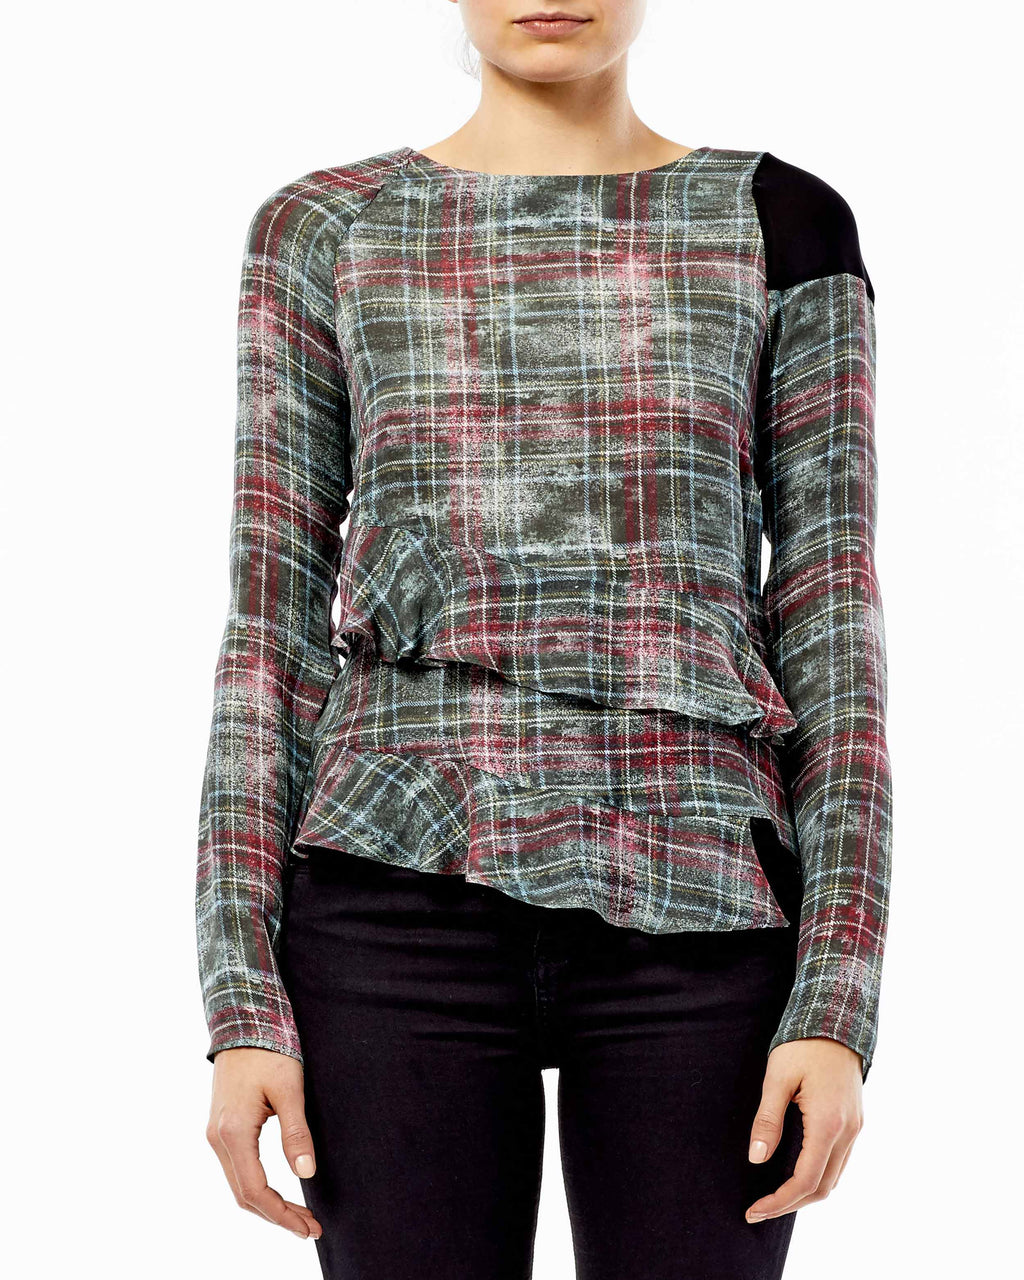 BH10371 - WEATHERED PLAID ASYMM RUFFLE BLOUSE - samples - tops - Think asymmetrically. This plaid blouse creates a contrasting shape with a boat neck and asymmetrical hem. The left sleeve has a black patch detail. Pair with dress pants for the office or denim for a casual afternoon. Final Sale